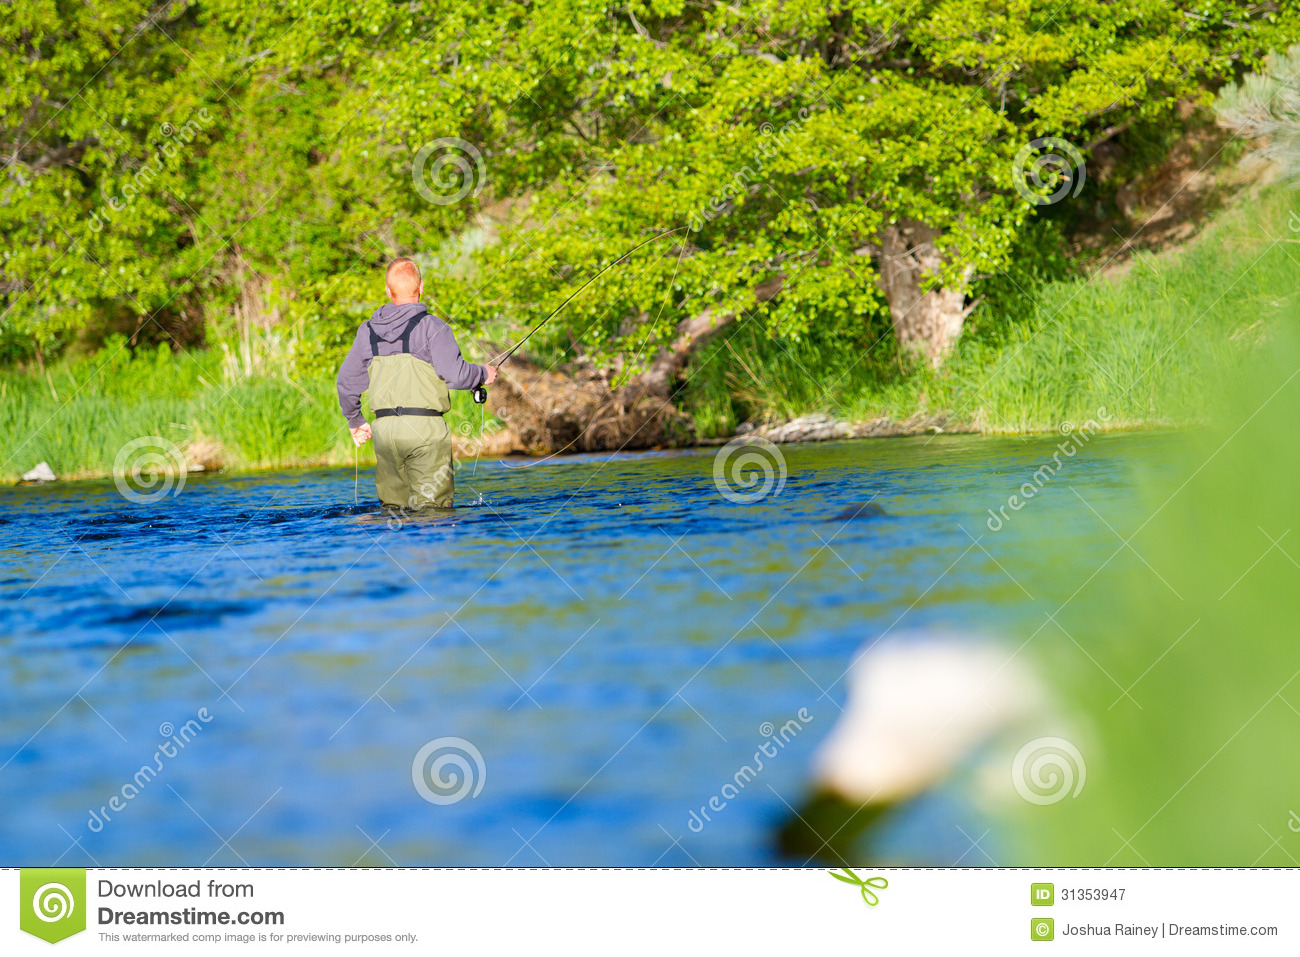 Fly Fisherman Deschutes River Stock Image - Image of sport, waders